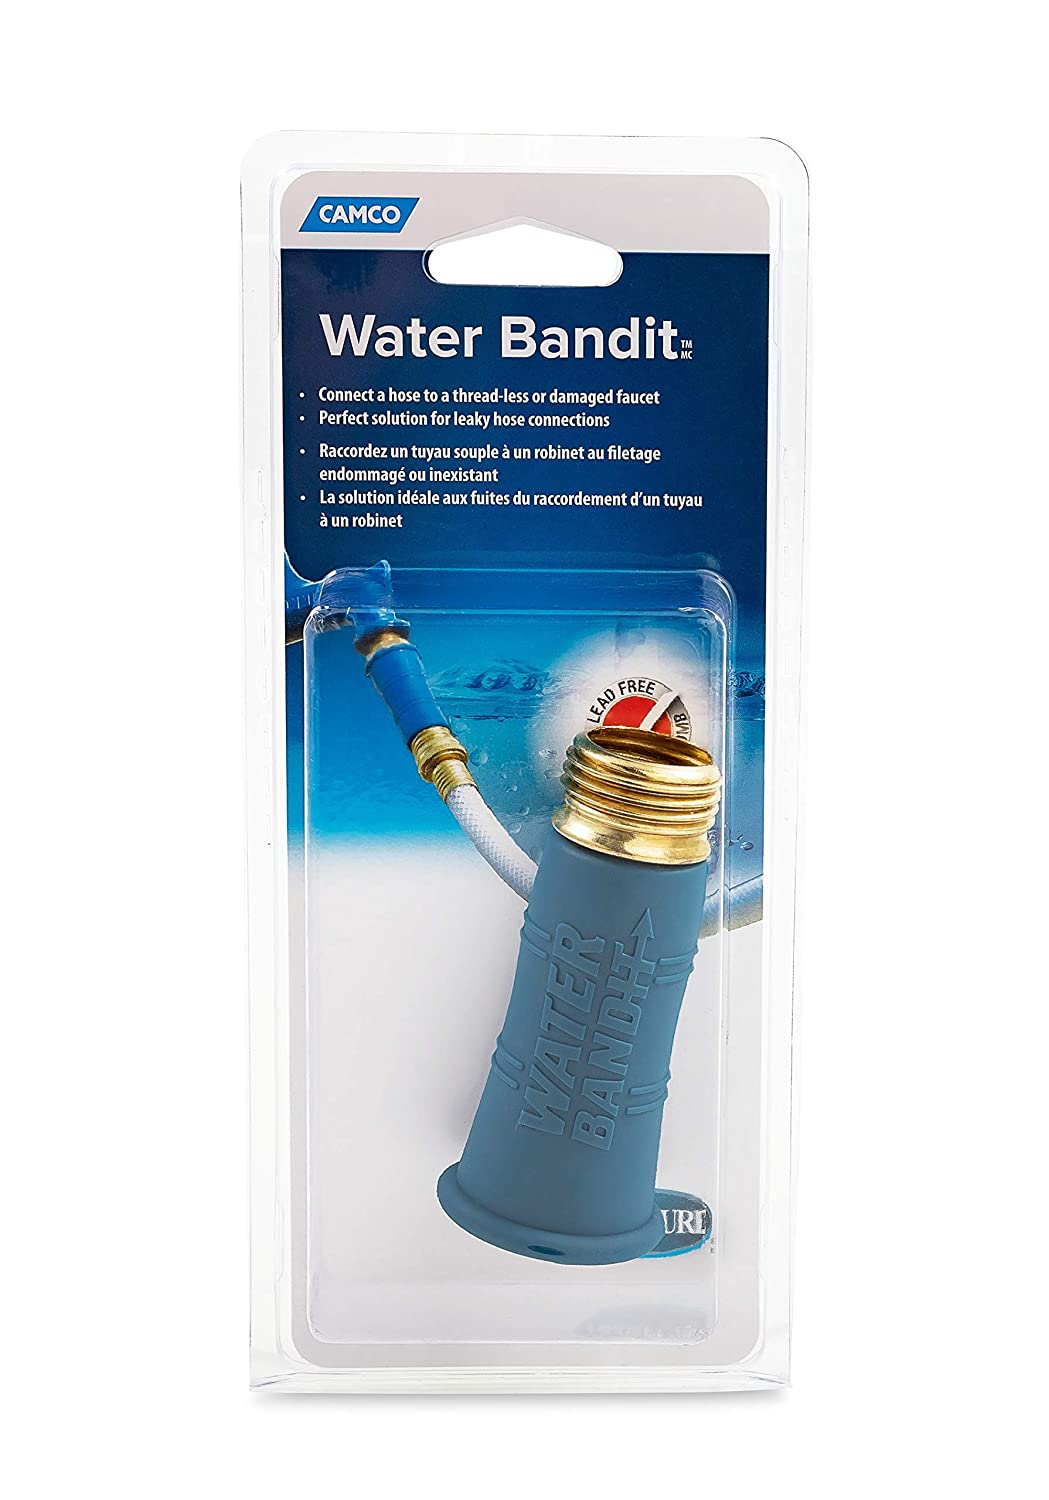 Water Bandit a must have for every RV